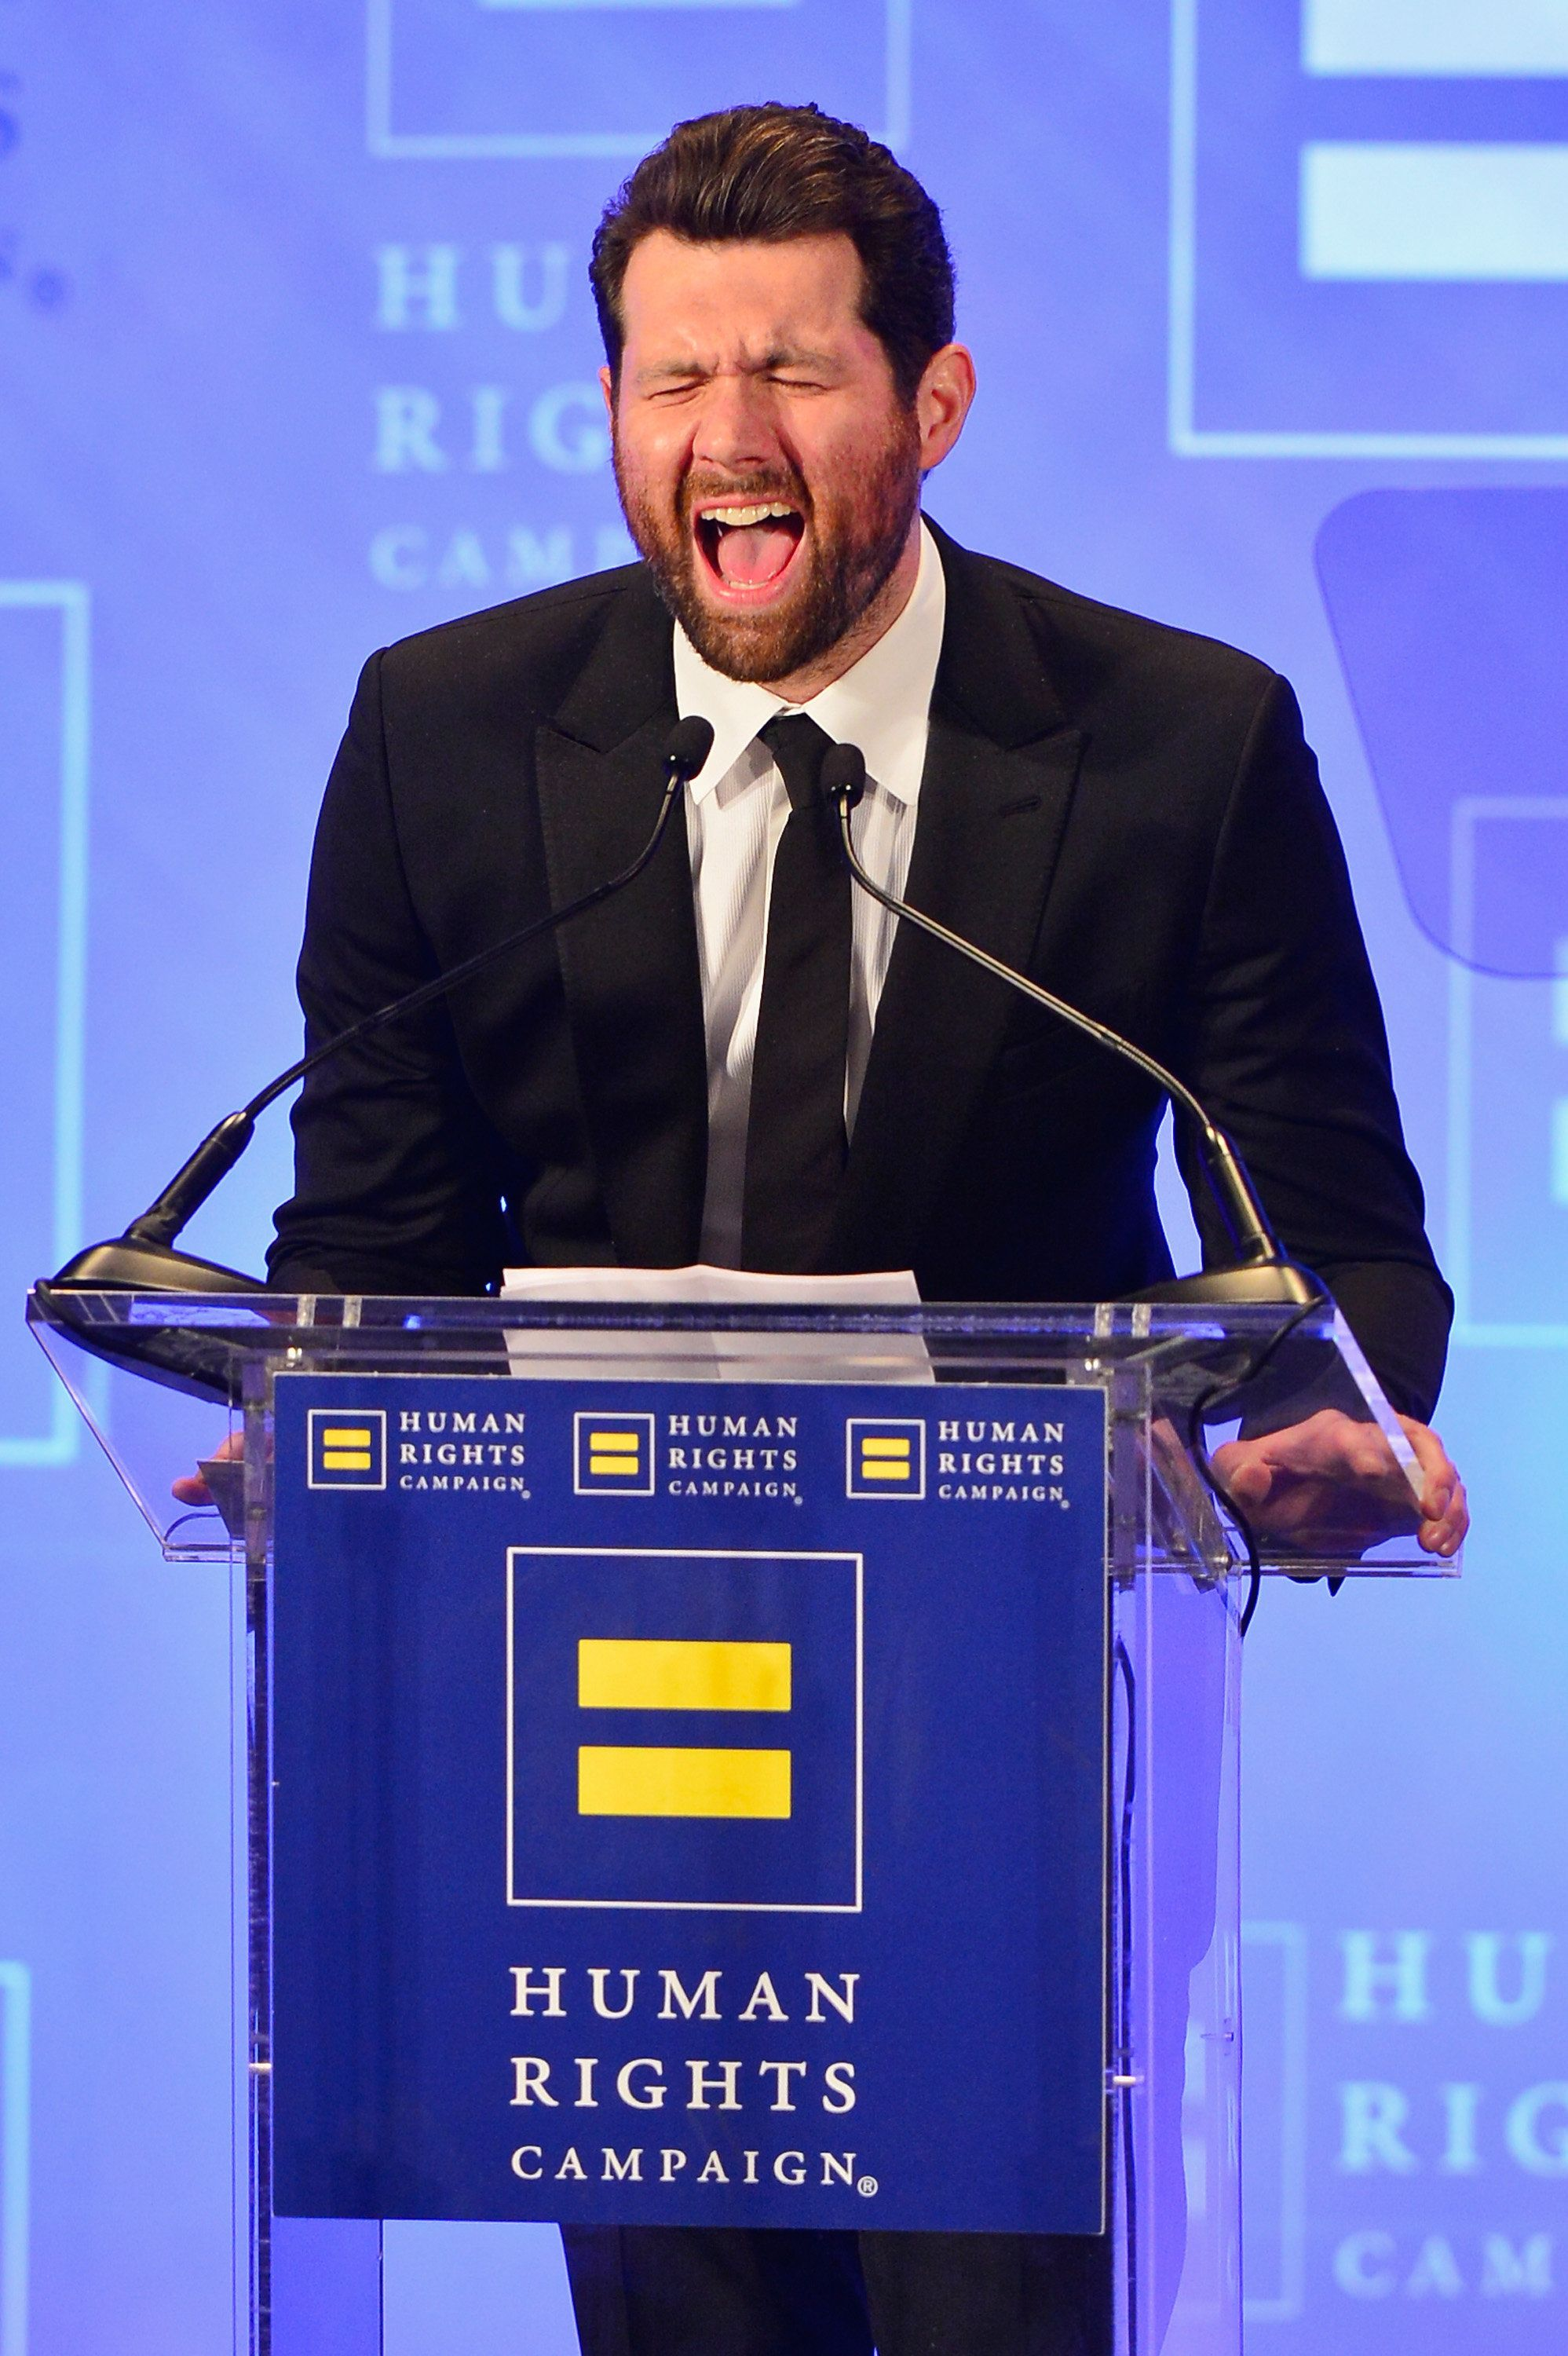 NEW YORK, NY - FEBRUARY 11:  Comedian Billy Eichner speaks onstage during the 2017 Human Rights Campaign Greater New York Gala at Waldorf Astoria Hotel on February 11, 2017 in New York City.  (Photo by Roy Rochlin/Getty Images)